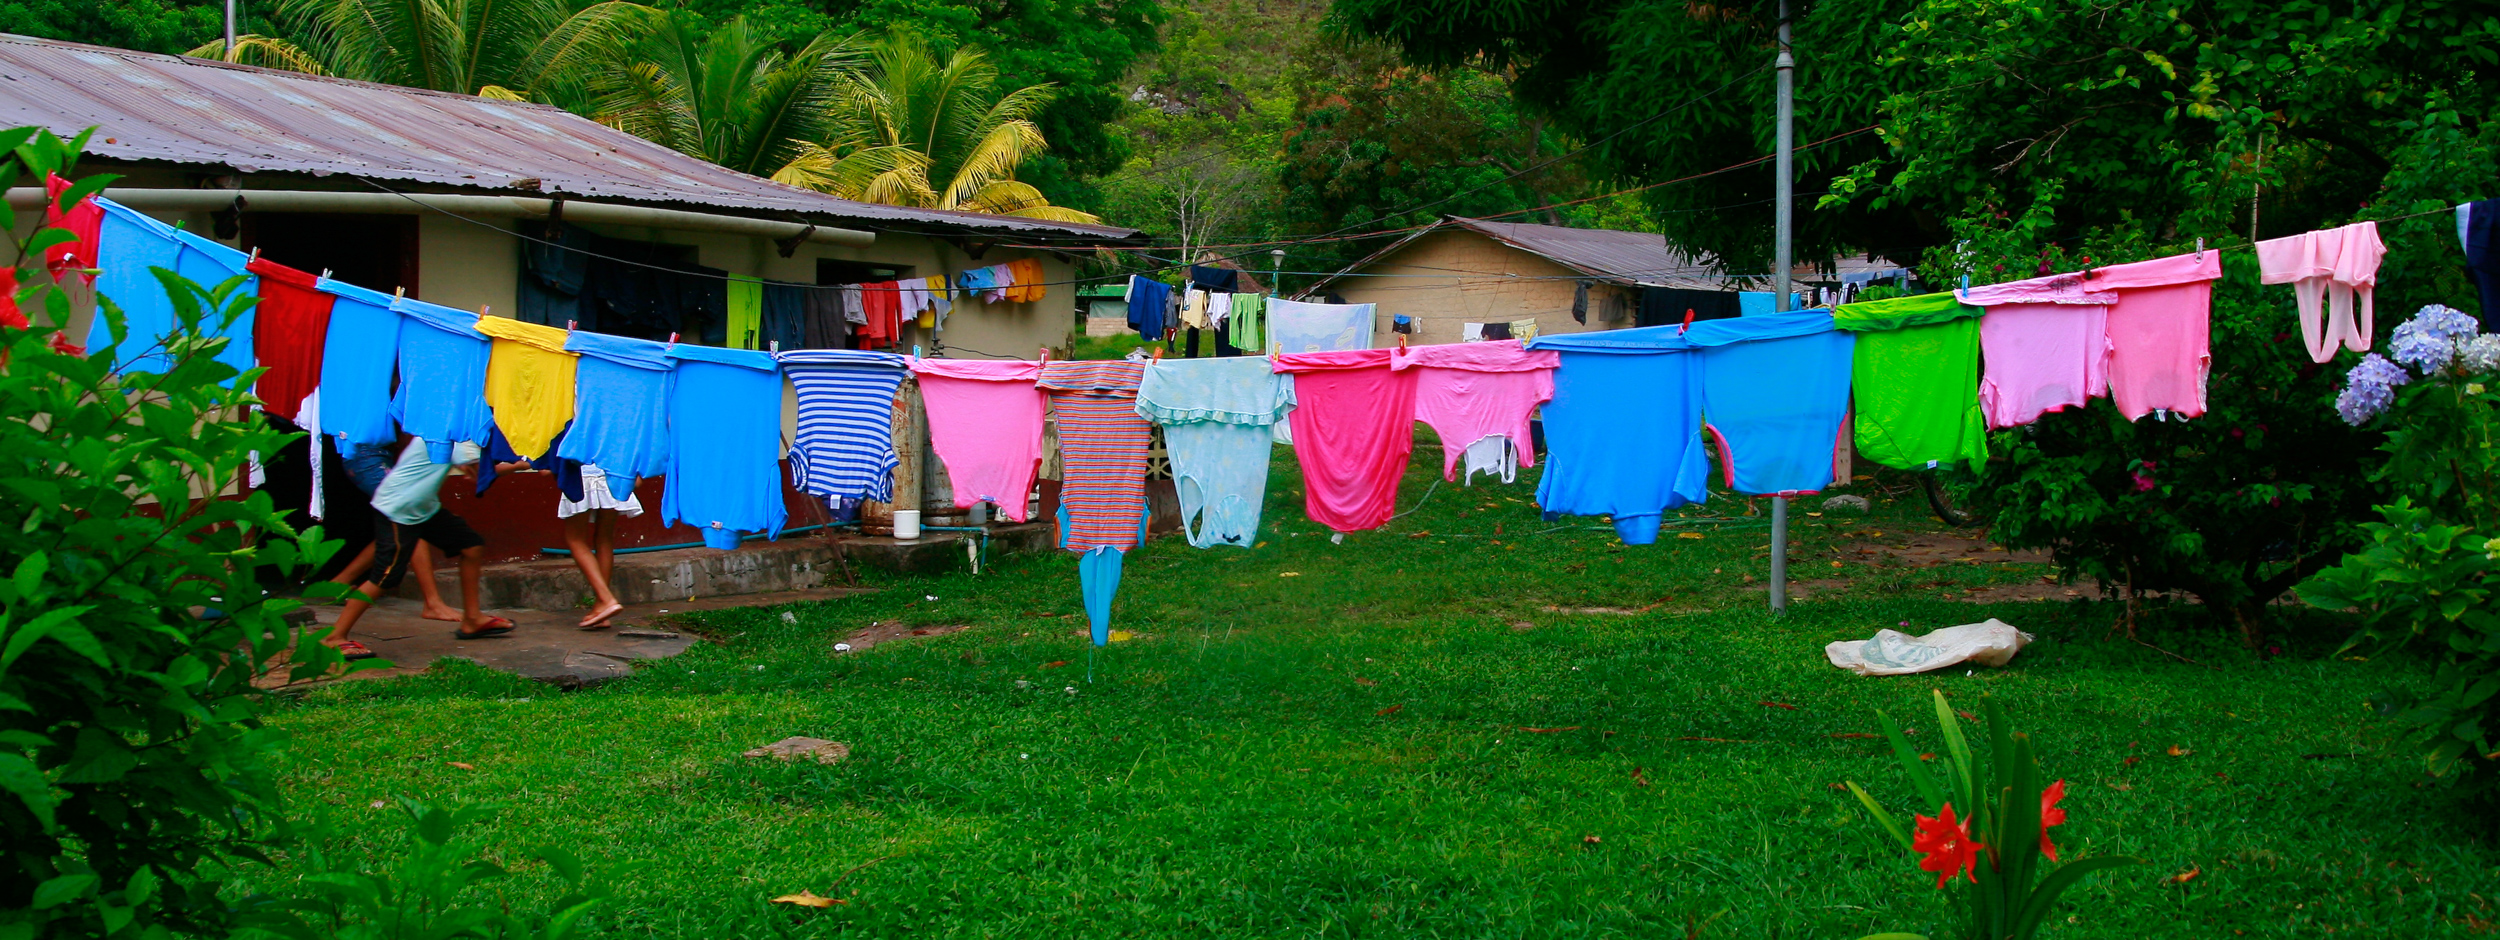 Colorful indigenous village in Canaima